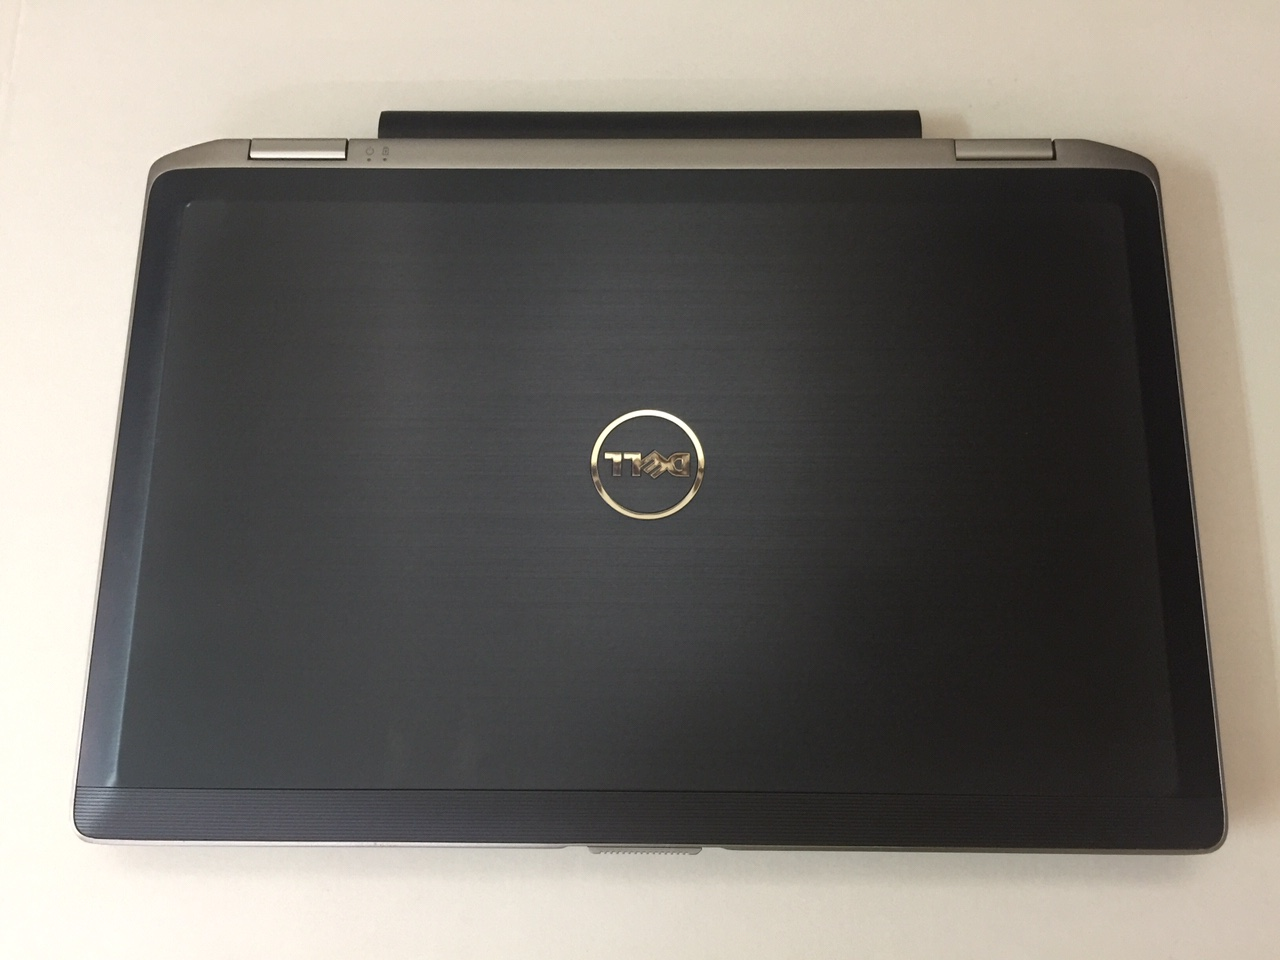 DELL LATITUDE E6520 I5 2520M 4GB 250GB 15.6